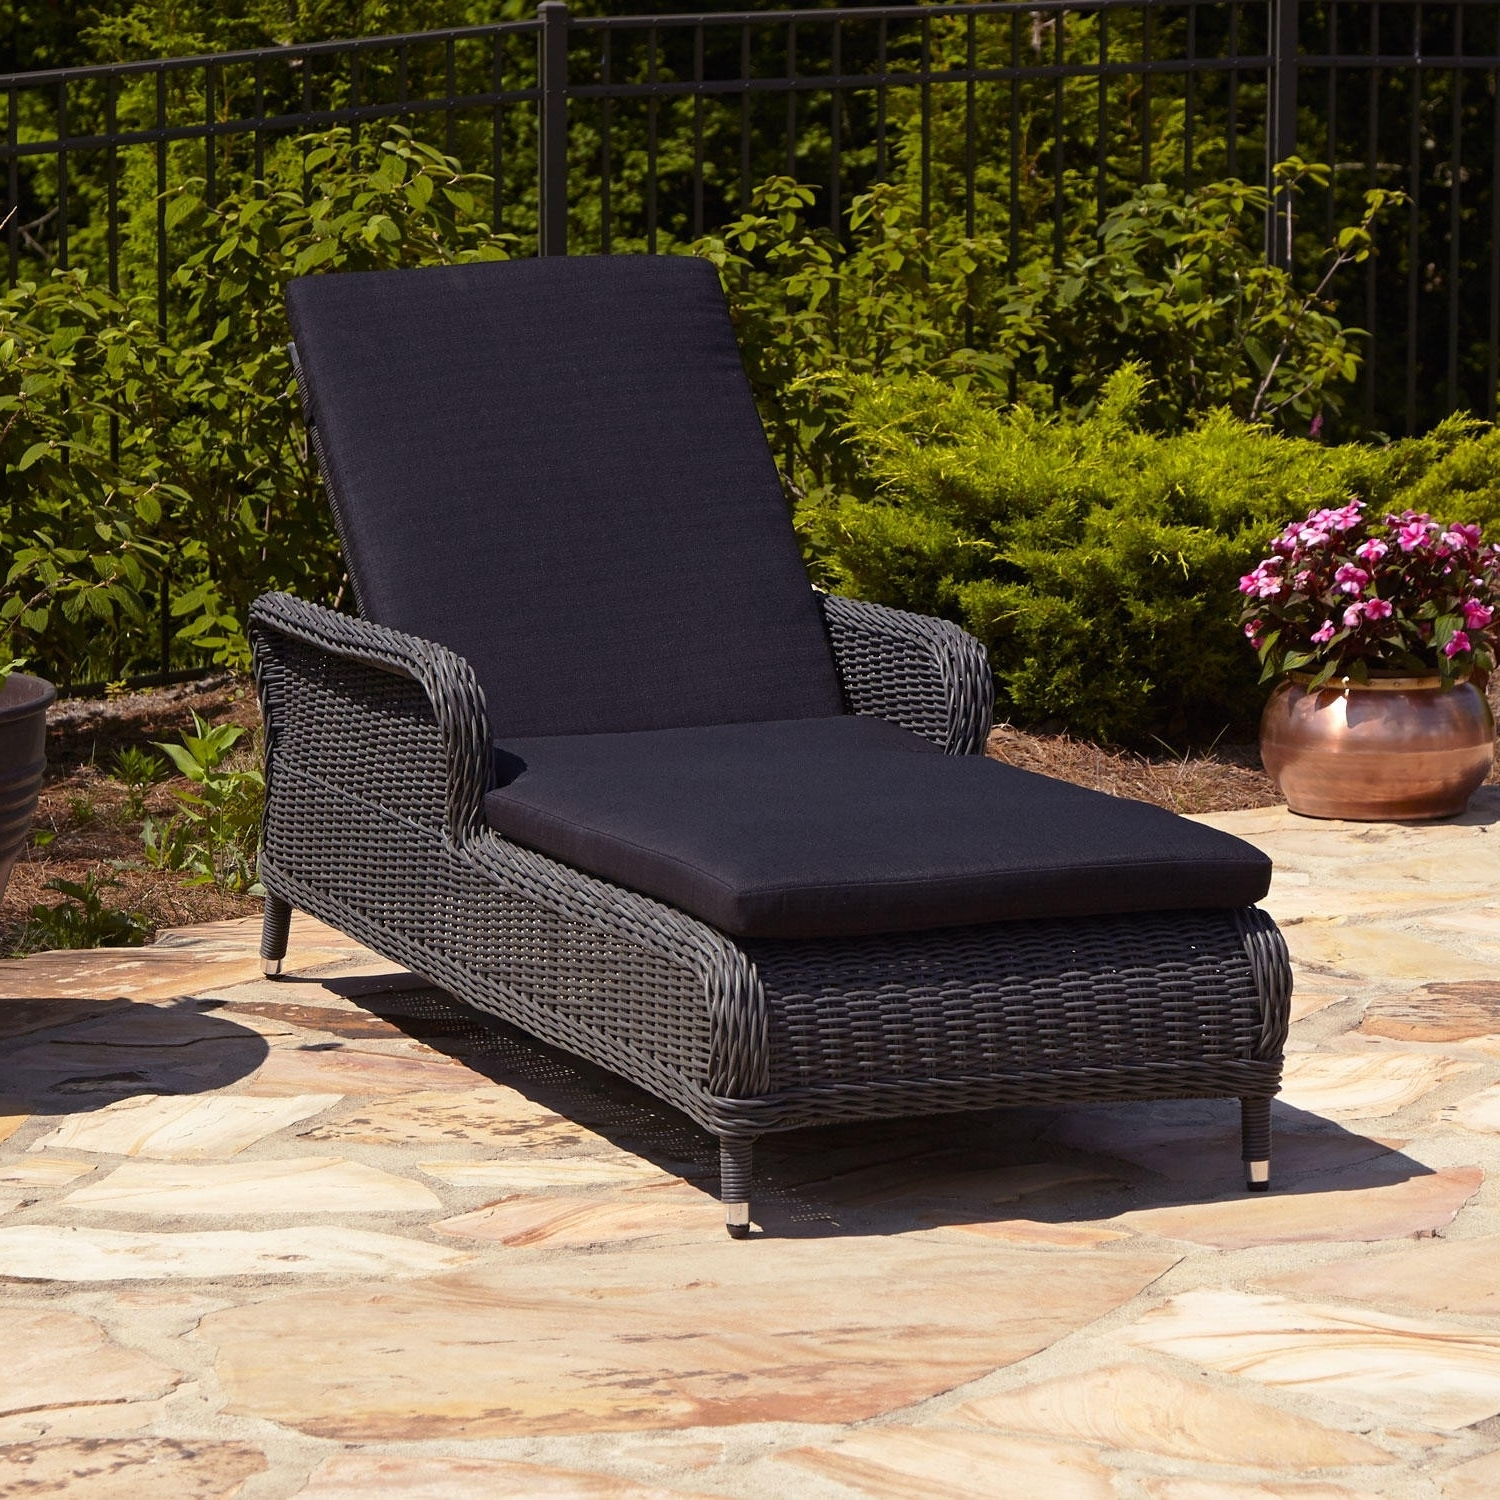 2017 Chaise Lounge Reclining Chairs For Outdoor Throughout Convertible Chair : Pool Deck Lounge Chairs Outdoor Tanning Chair (View 1 of 15)